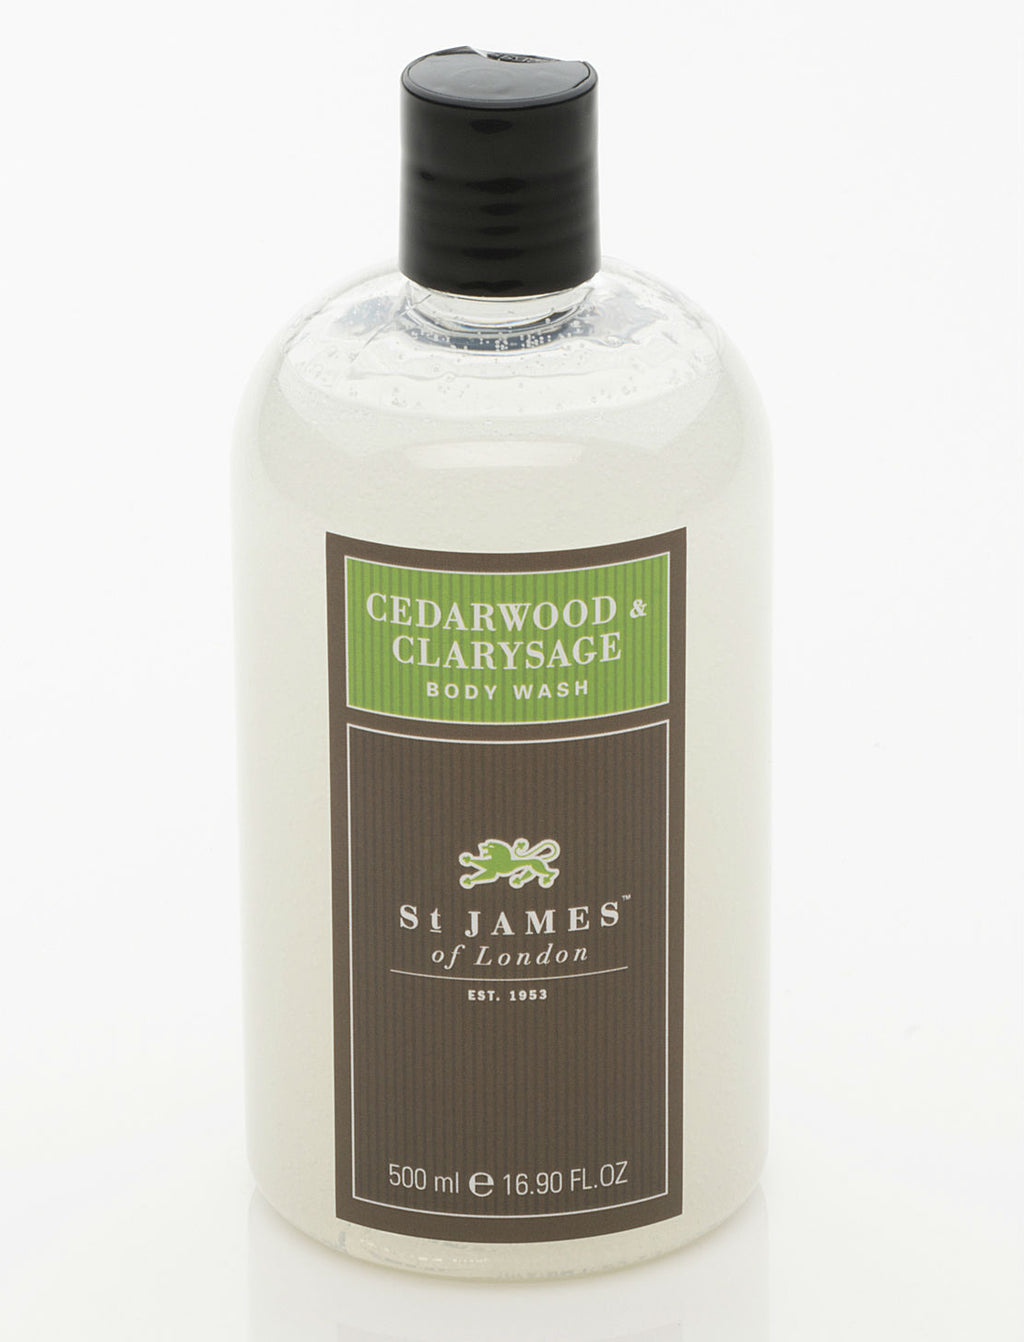 Cedarwood & Clarysage Body Wash 0.5L (4331257397302)